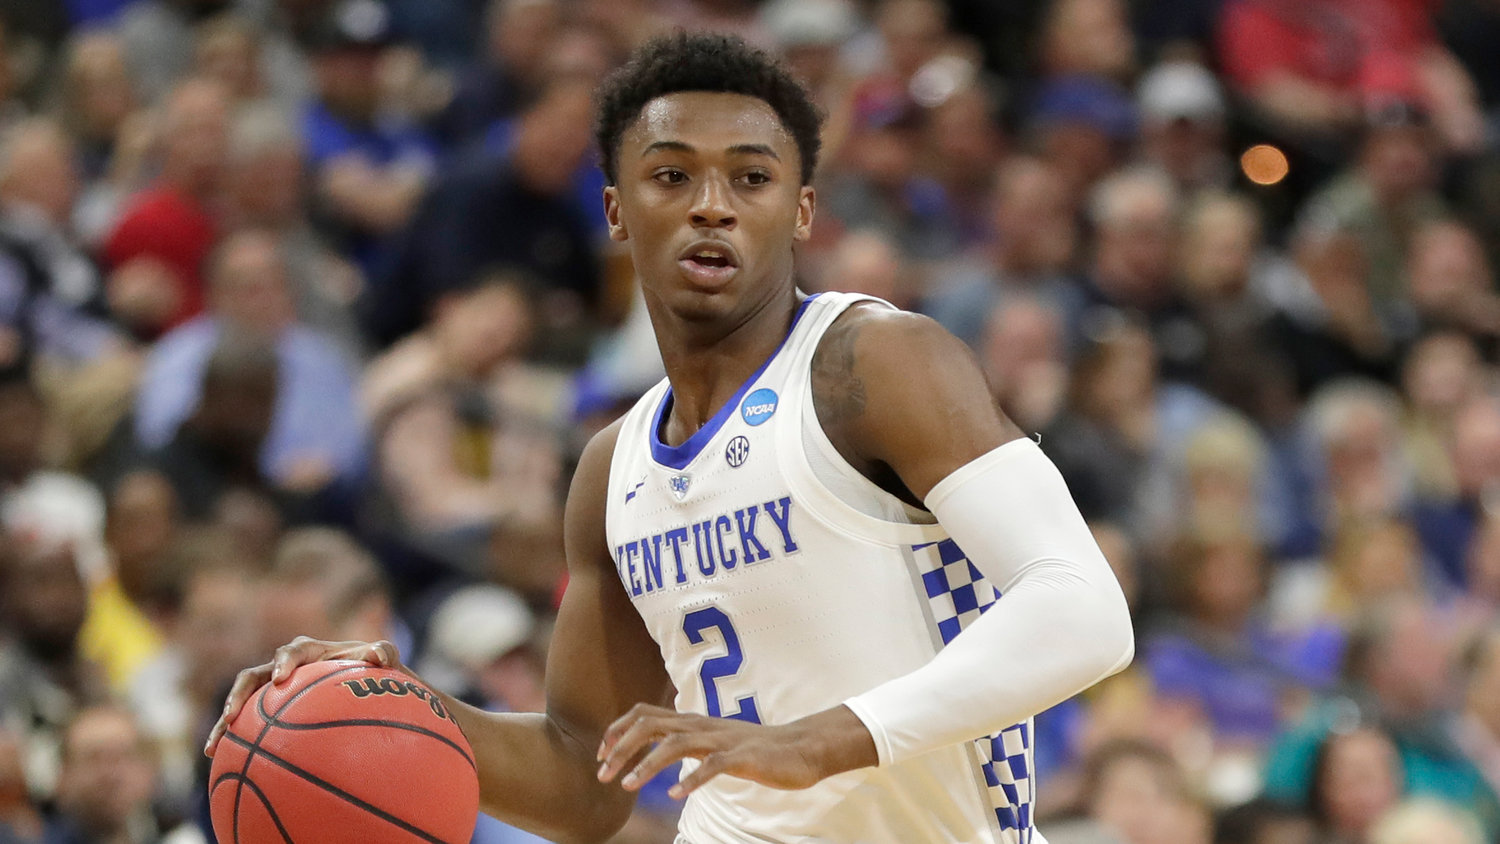 Kentucky's Ashton Hagans moves the ball against Wofford during the first half of an NCAA Tournament second-round game March 23, 2019, in Jacksonville, Florida.